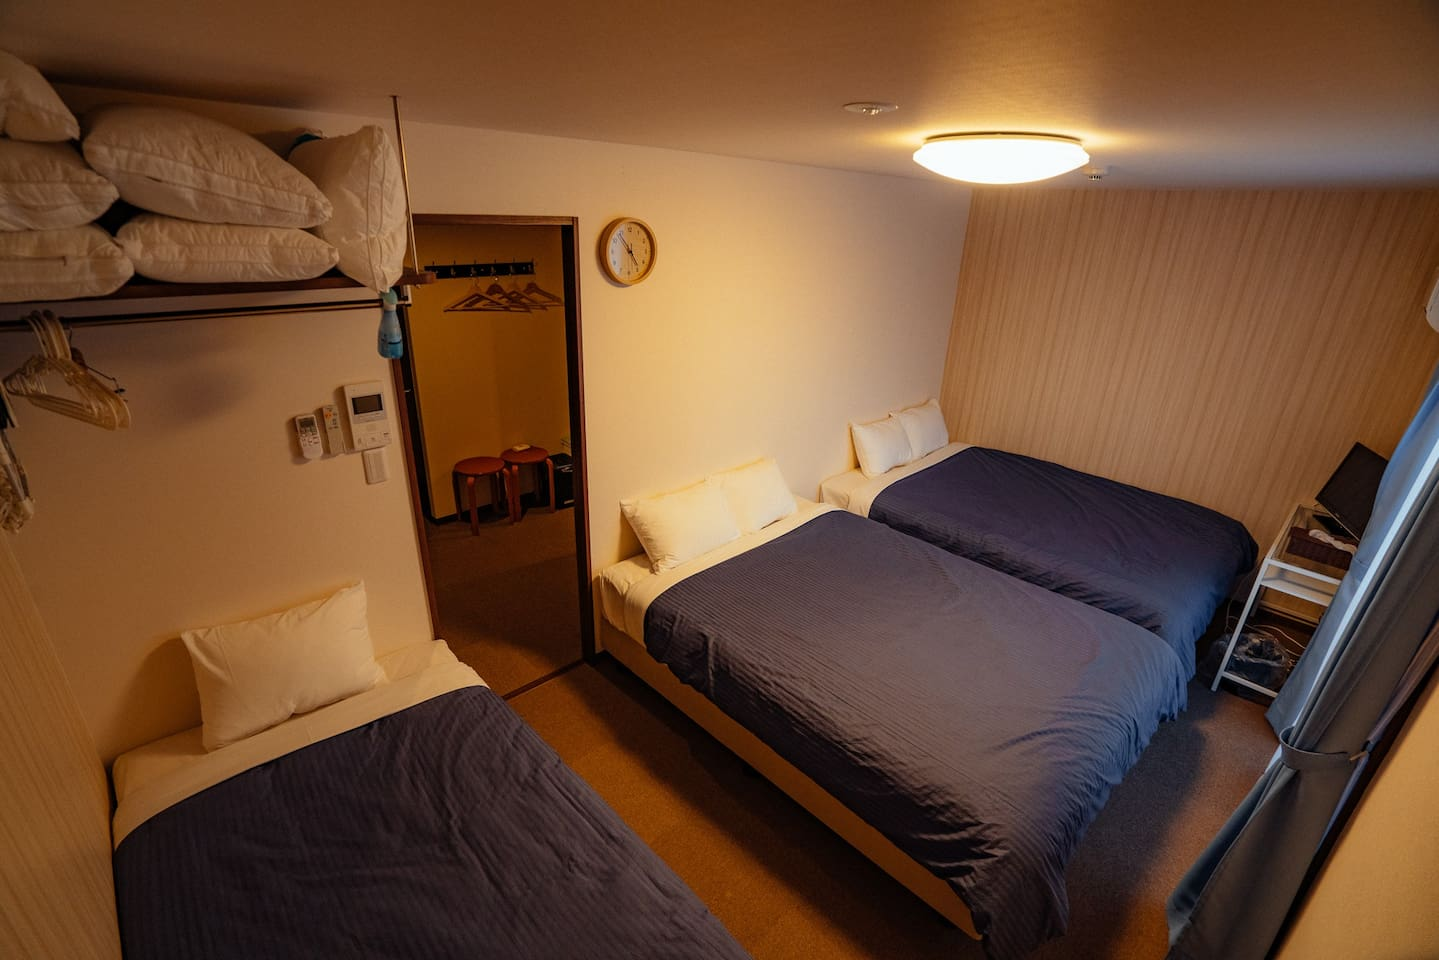 Bedroom with two full/double size beds and one twin/single bed.